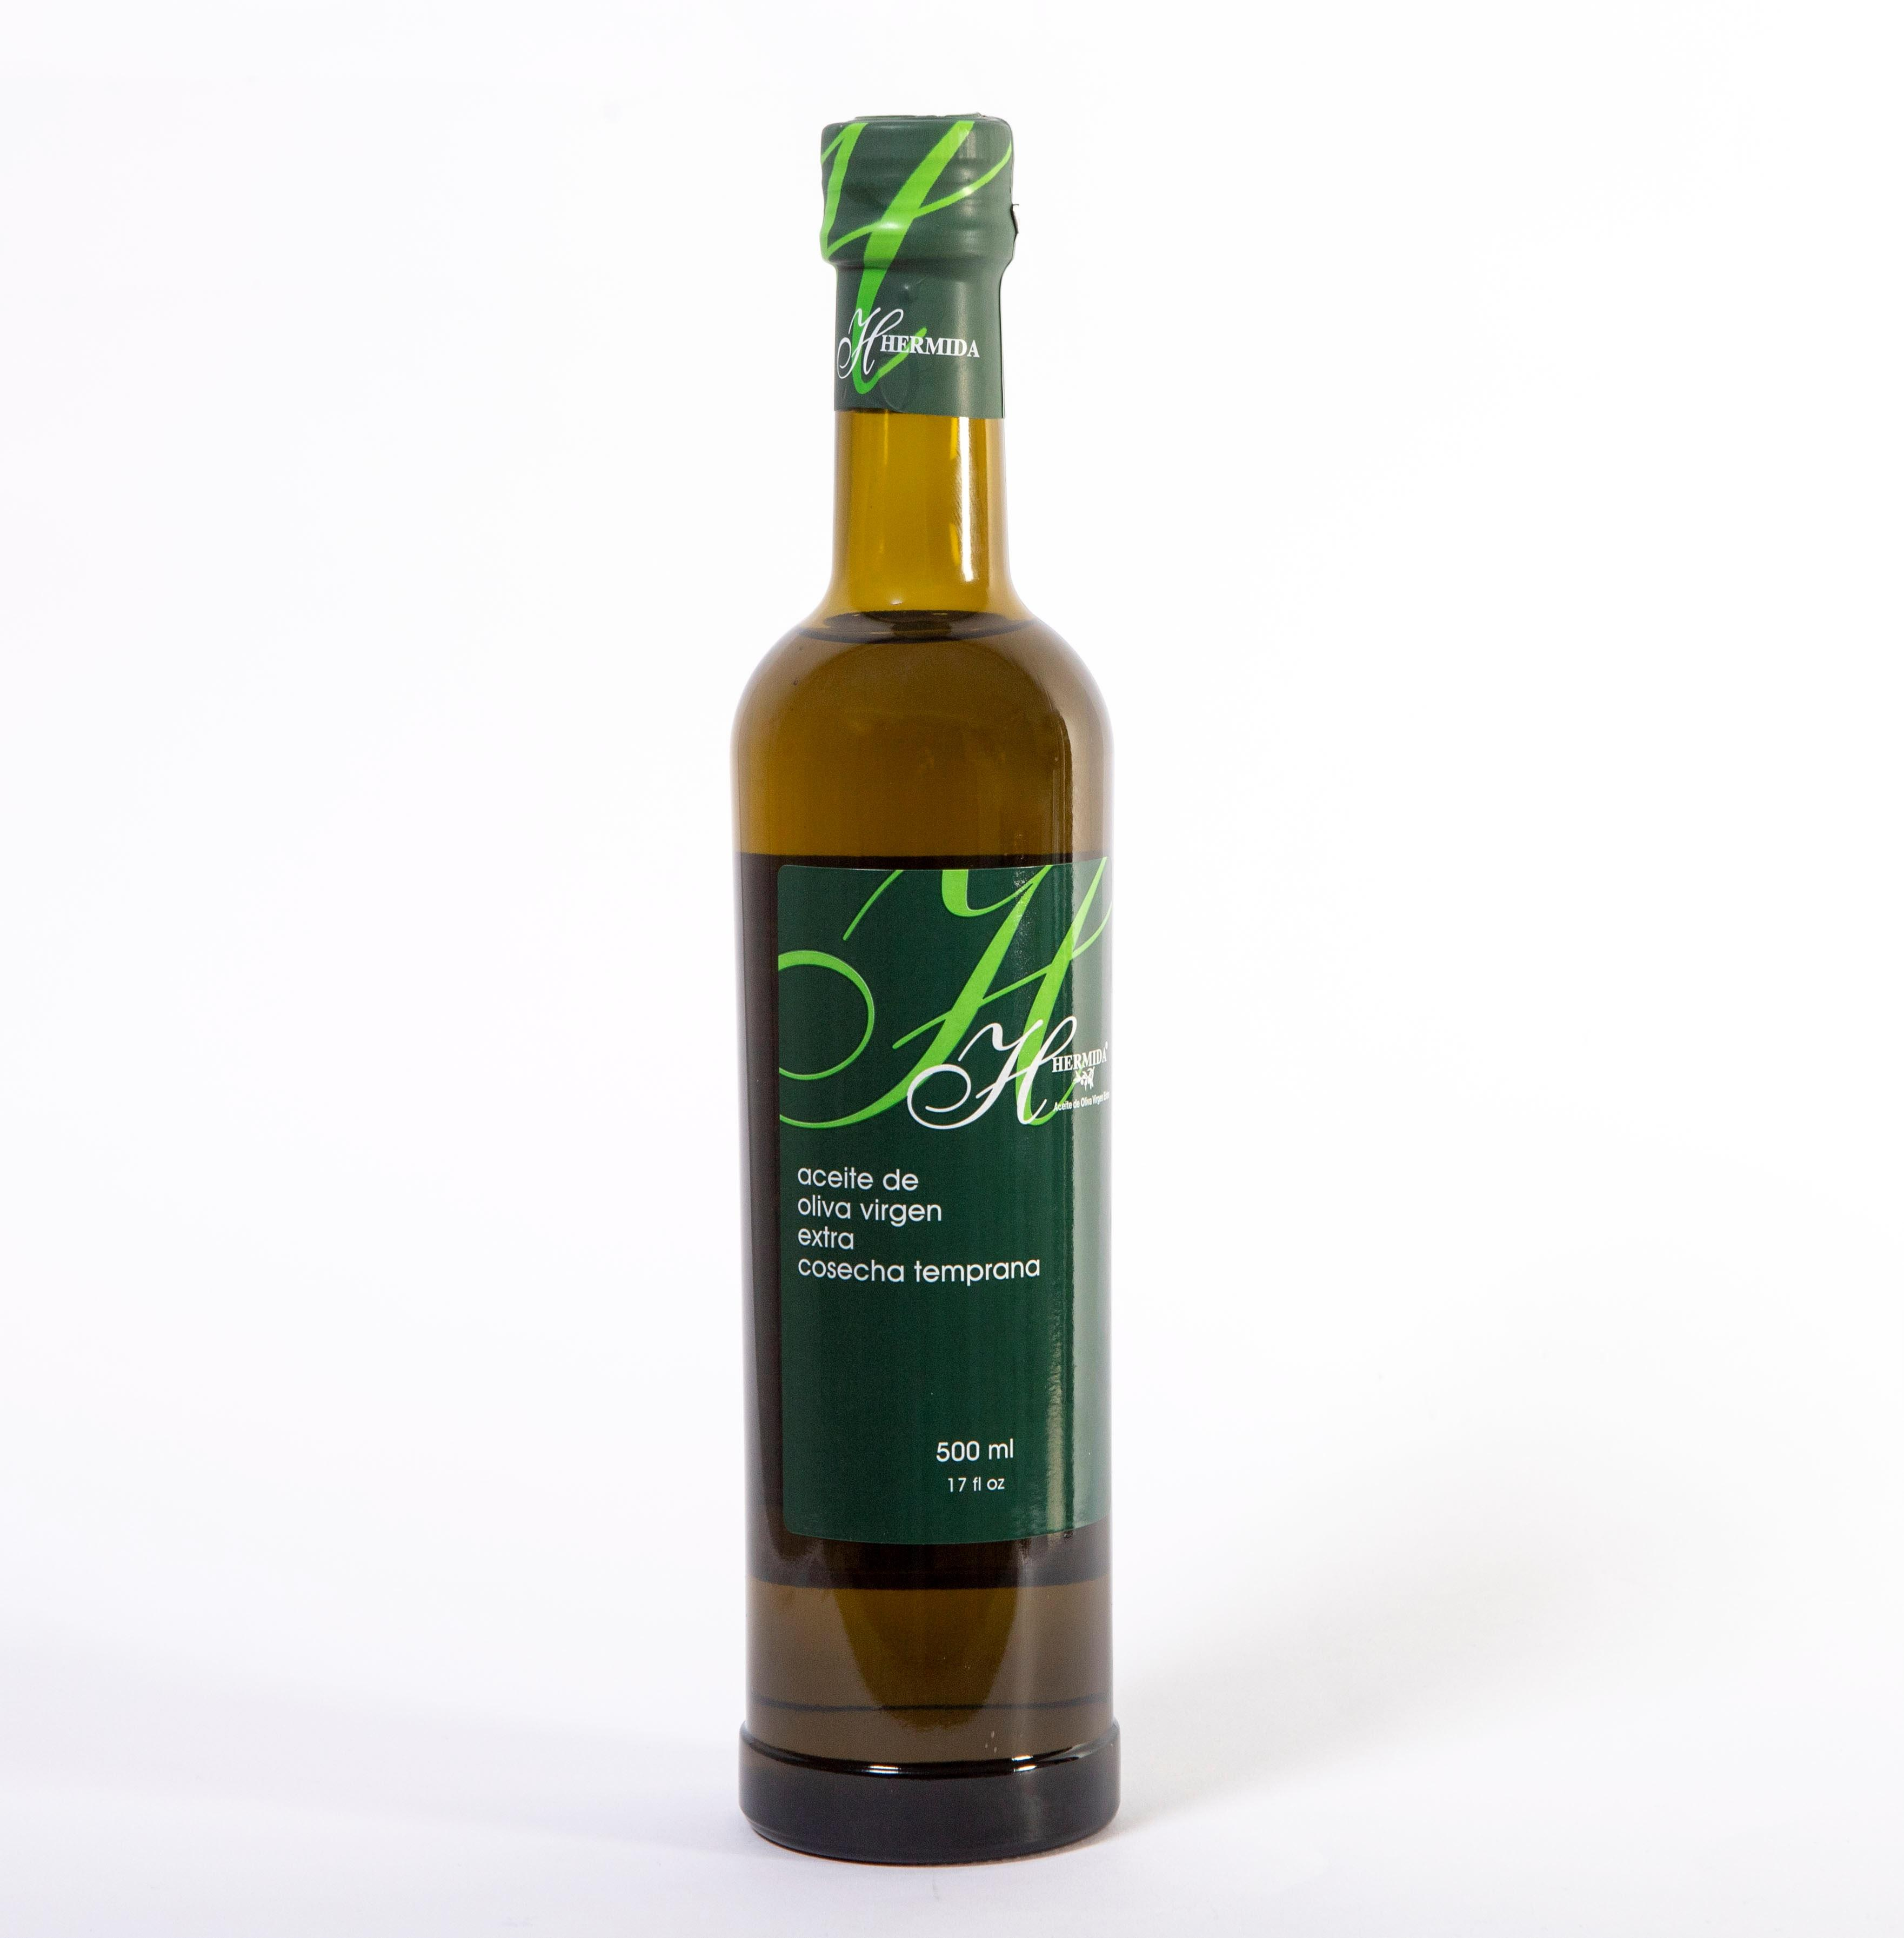 EXTRA VIRGIN OLIVE OIL 500 ML FROM SPAIN